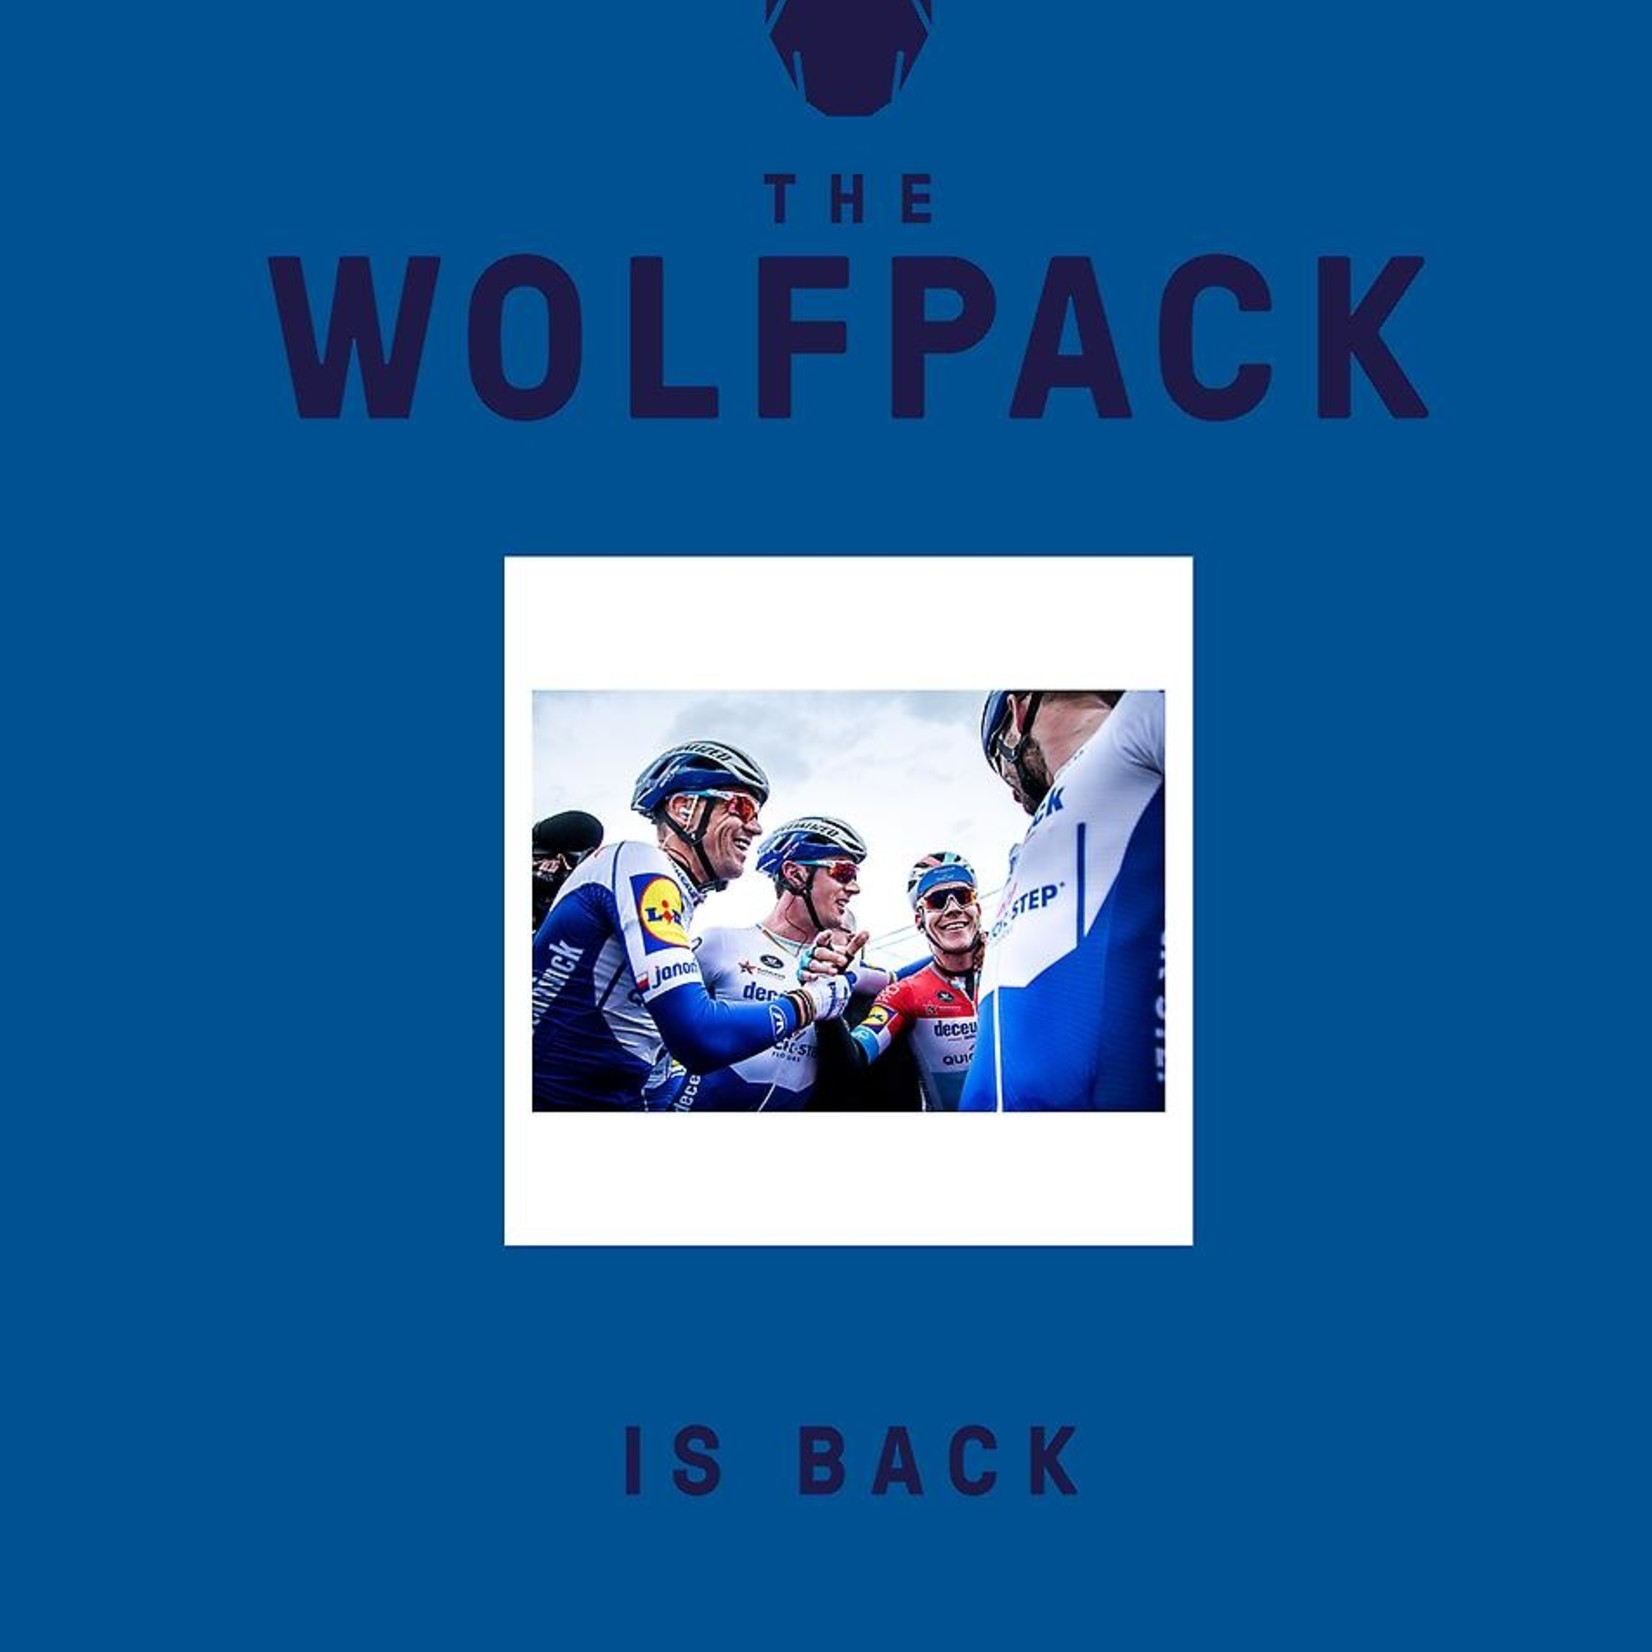 The Wolfpack is back (NED)